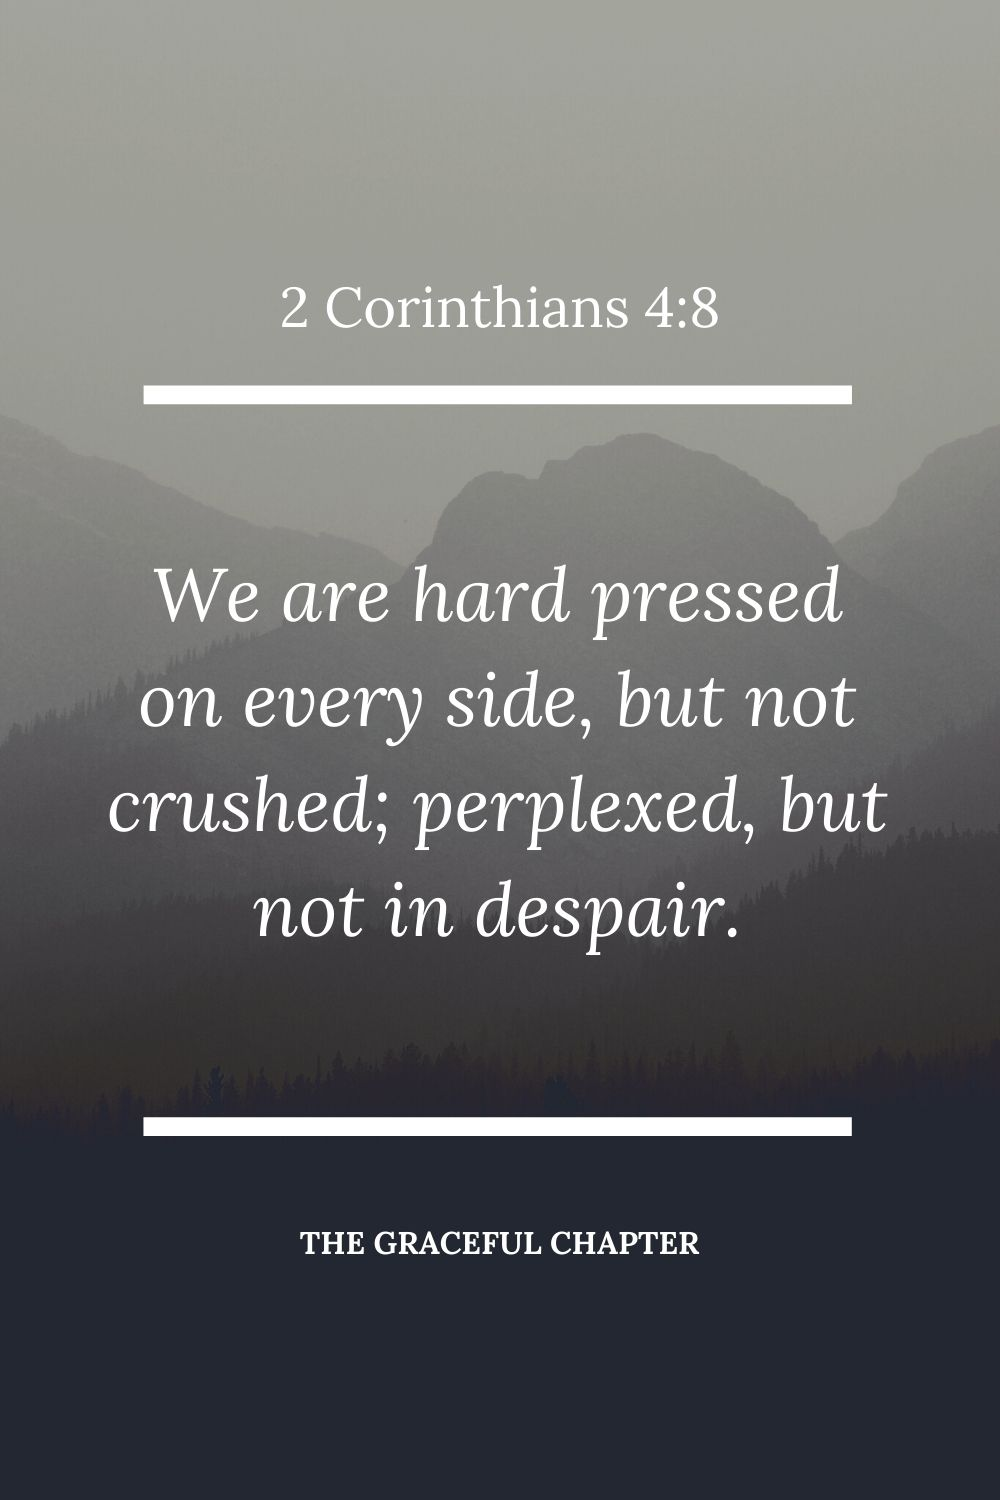 We are hard pressed on every side, but not crushed; perplexed, but not in despair; 2 Corinthians 4:8